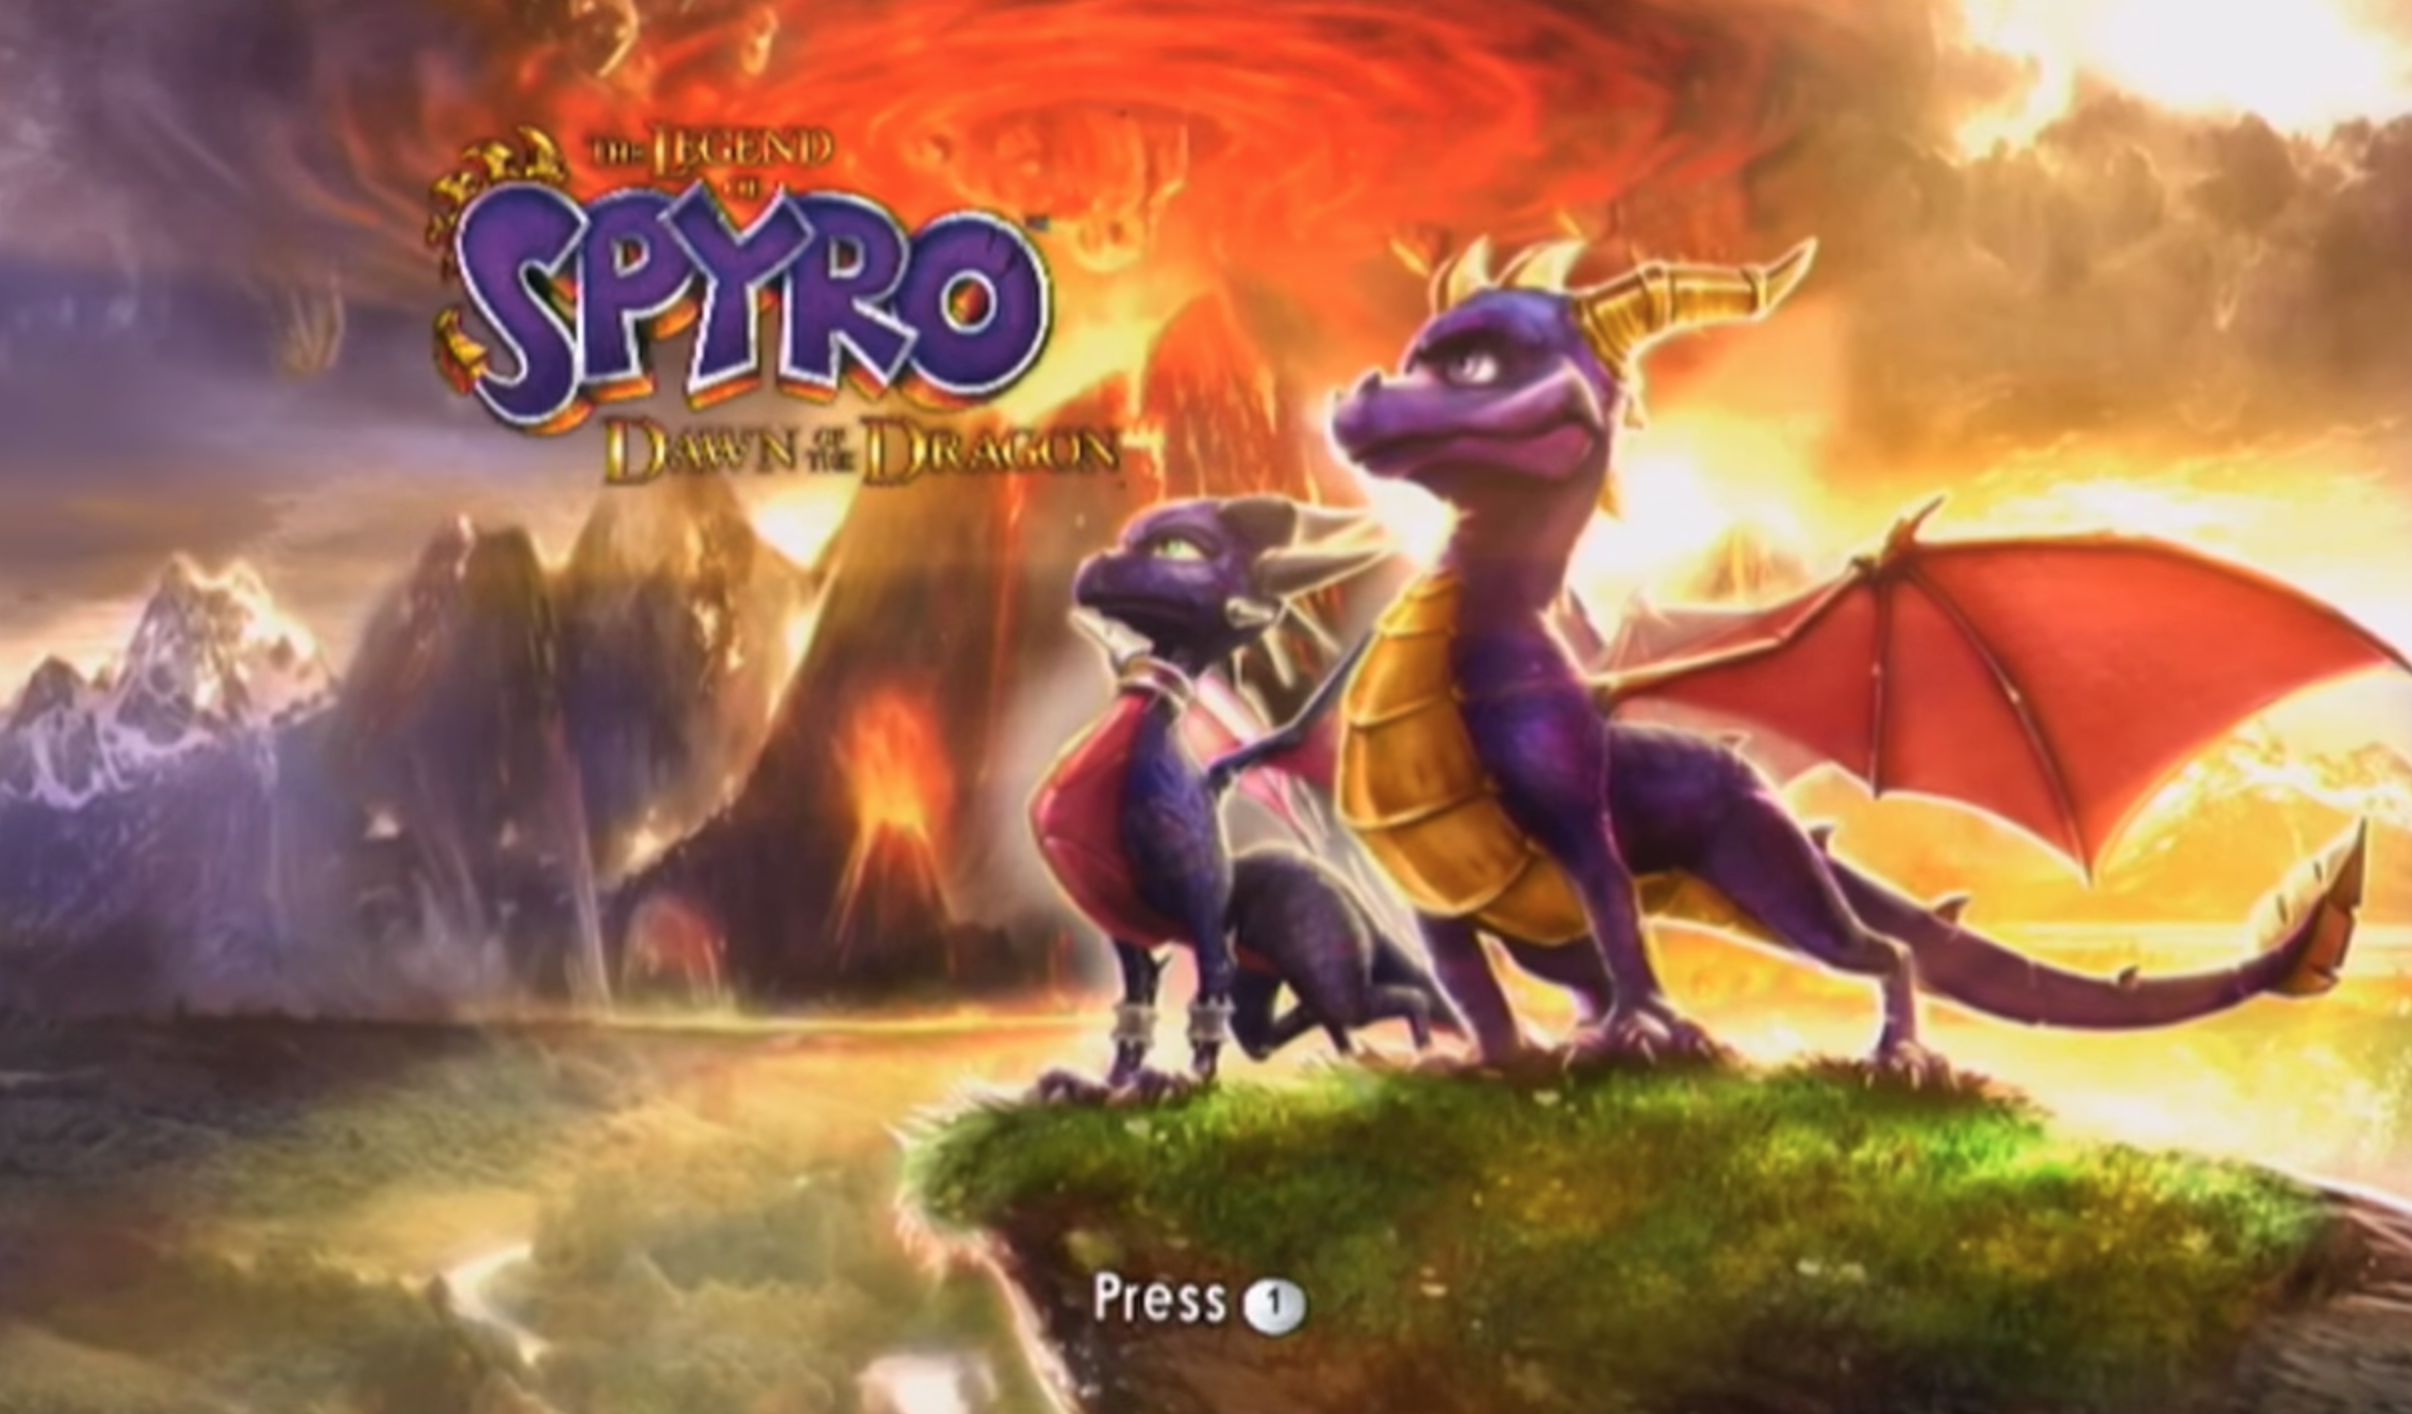 'Spyro the Dragon' trilogy remaster landing on PS4 this year